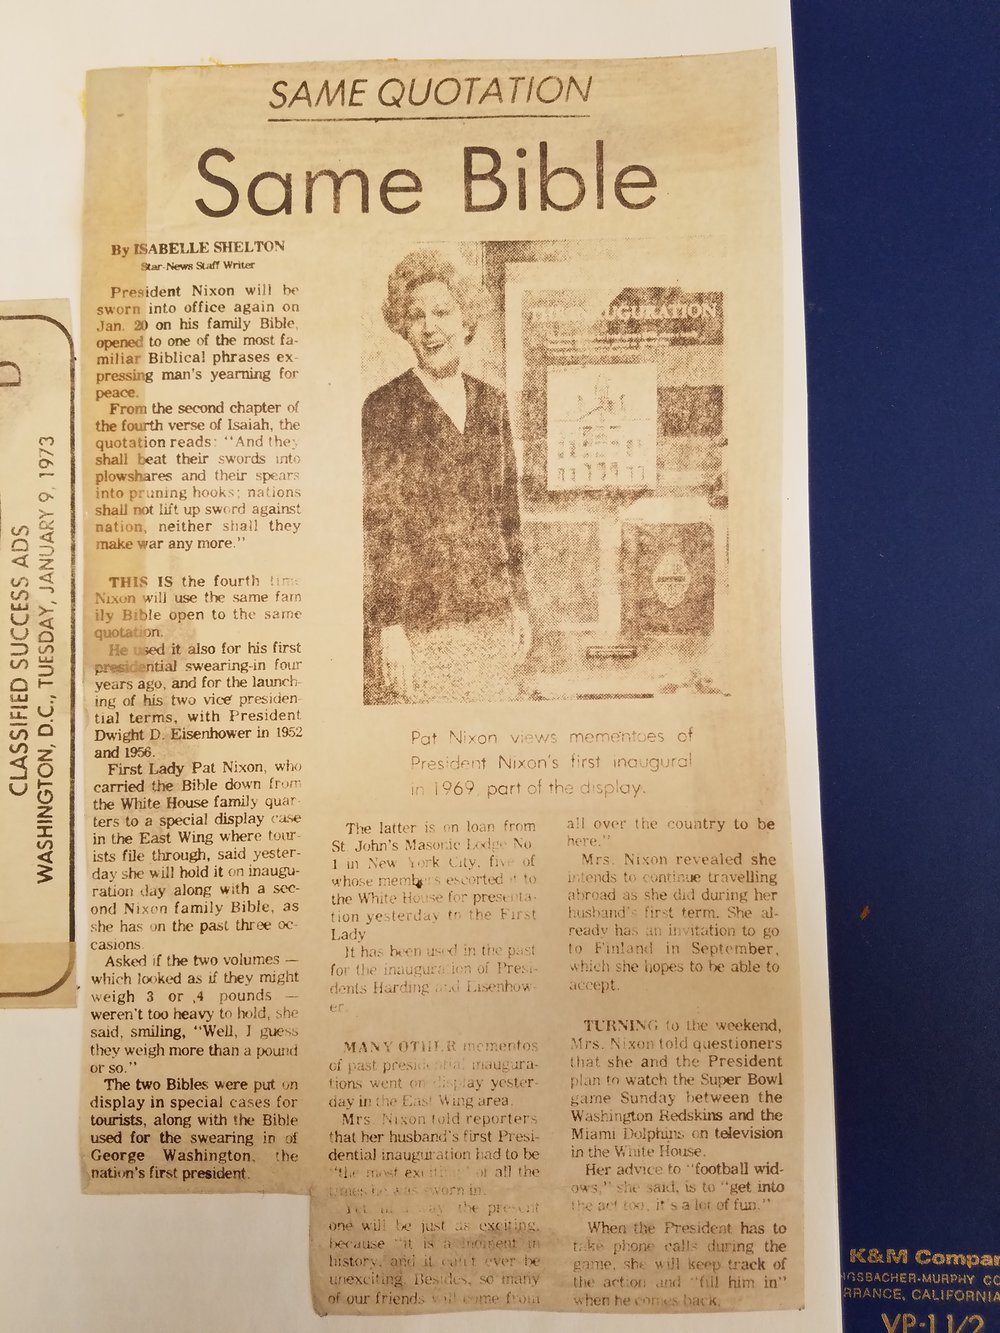 Star-News 1973 Article on the GWIB at the White House